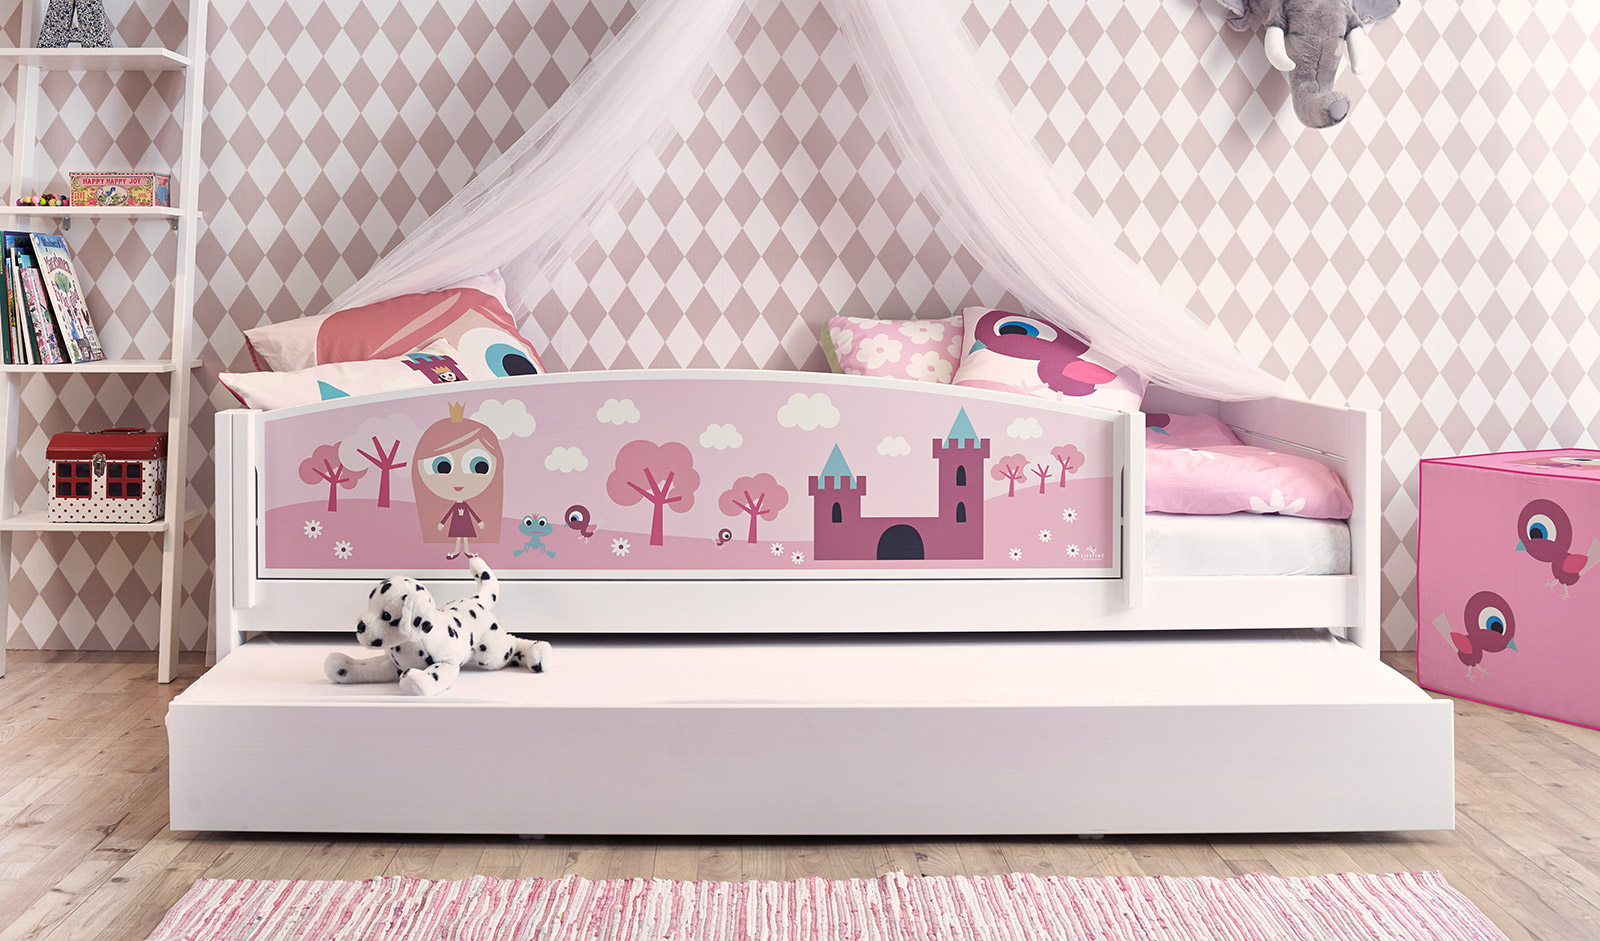 prinzessin bett kinderbett selber bauen pictures. Black Bedroom Furniture Sets. Home Design Ideas